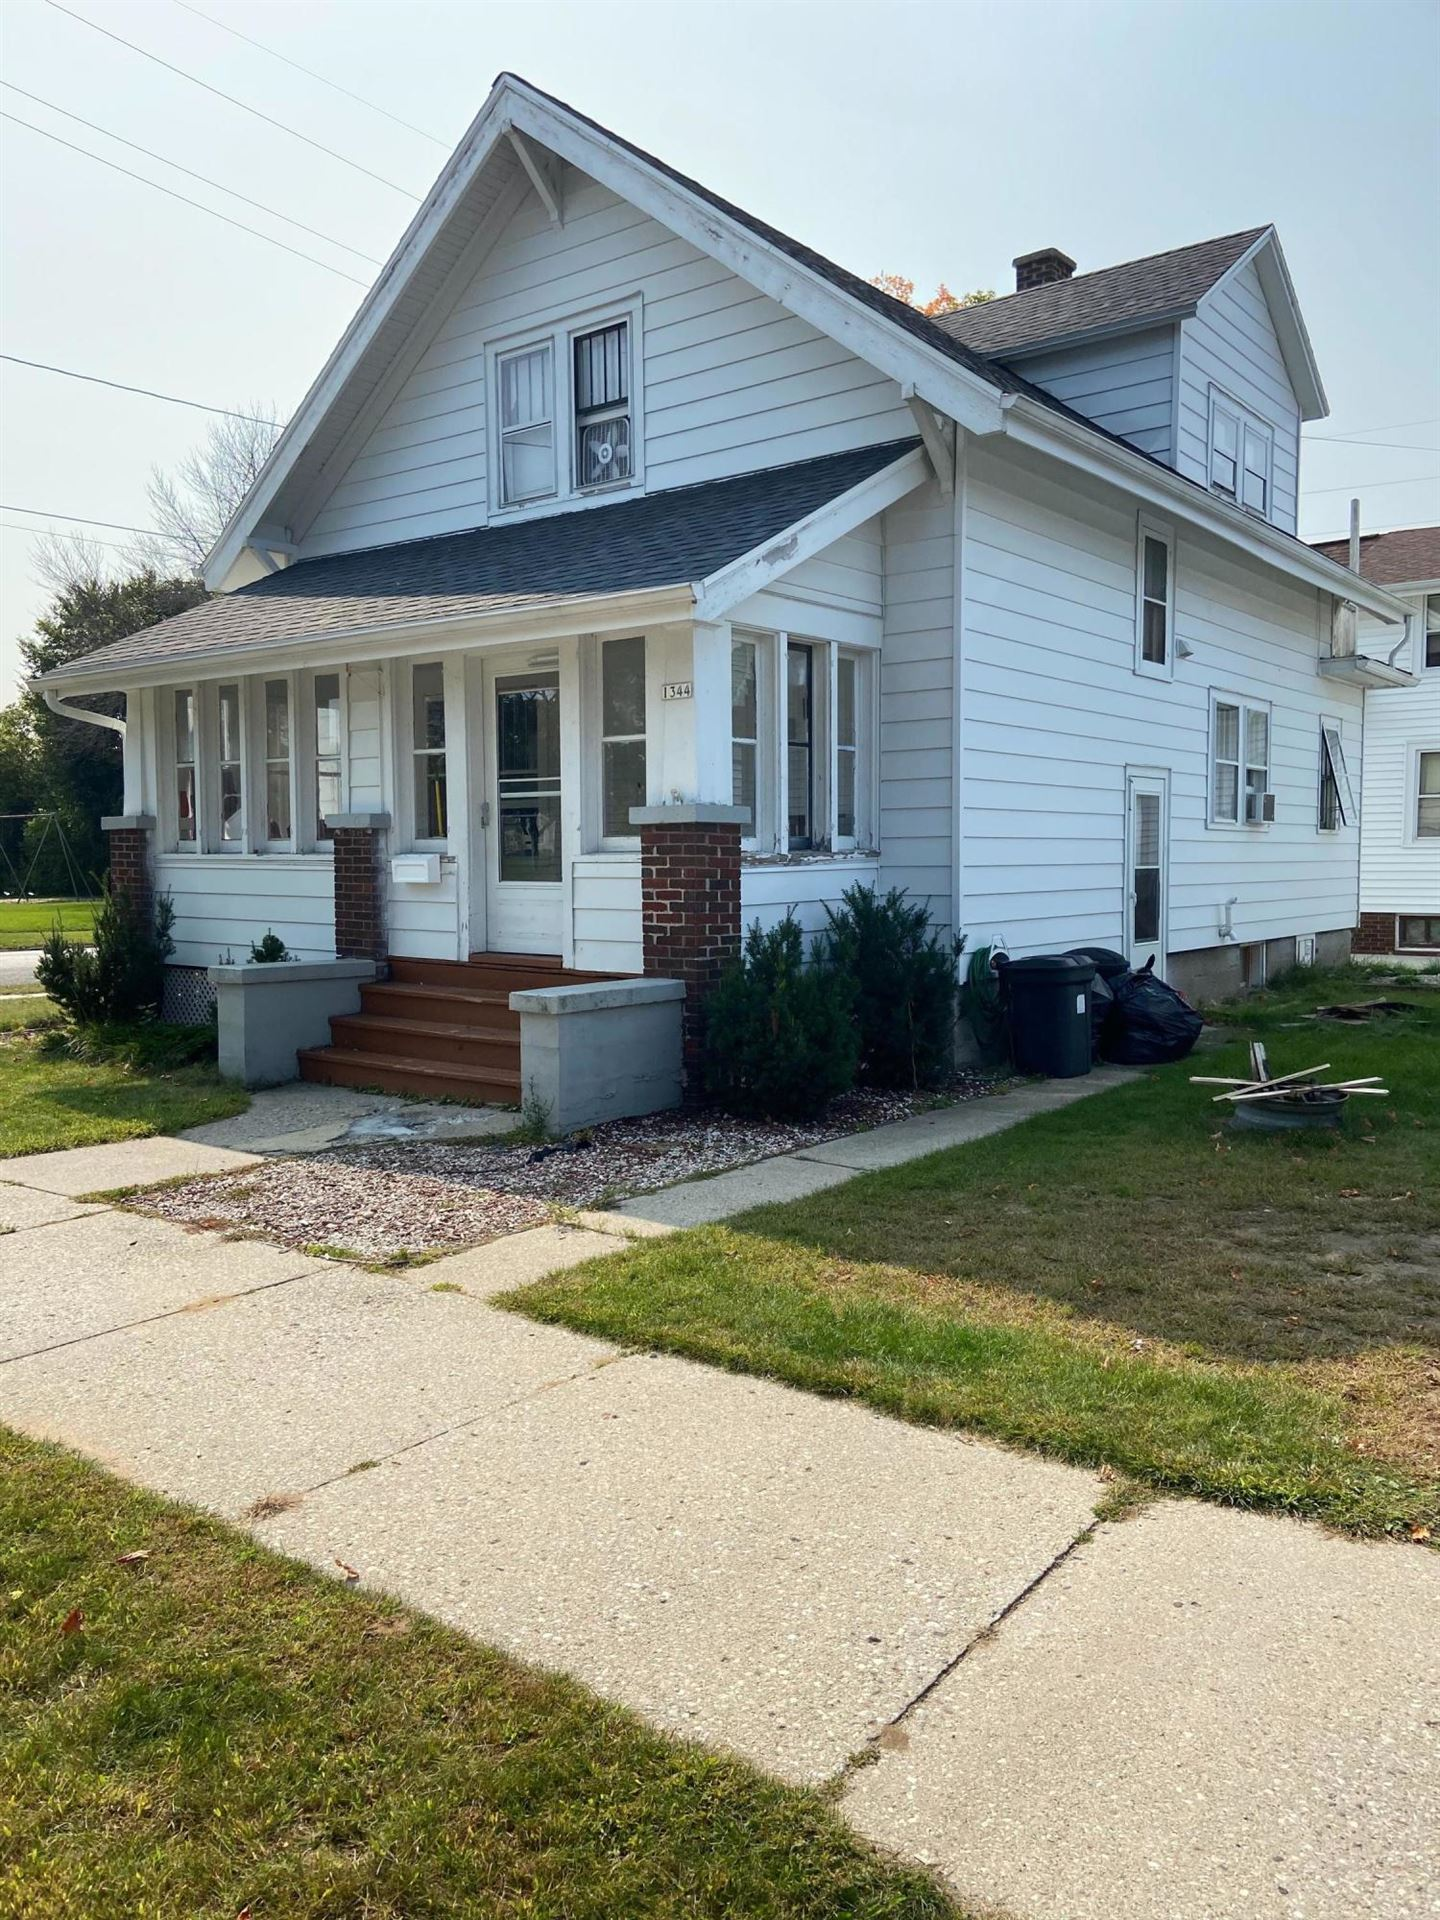 1344 S 18th St, Manitowoc, WI 54220 - #: 1712635